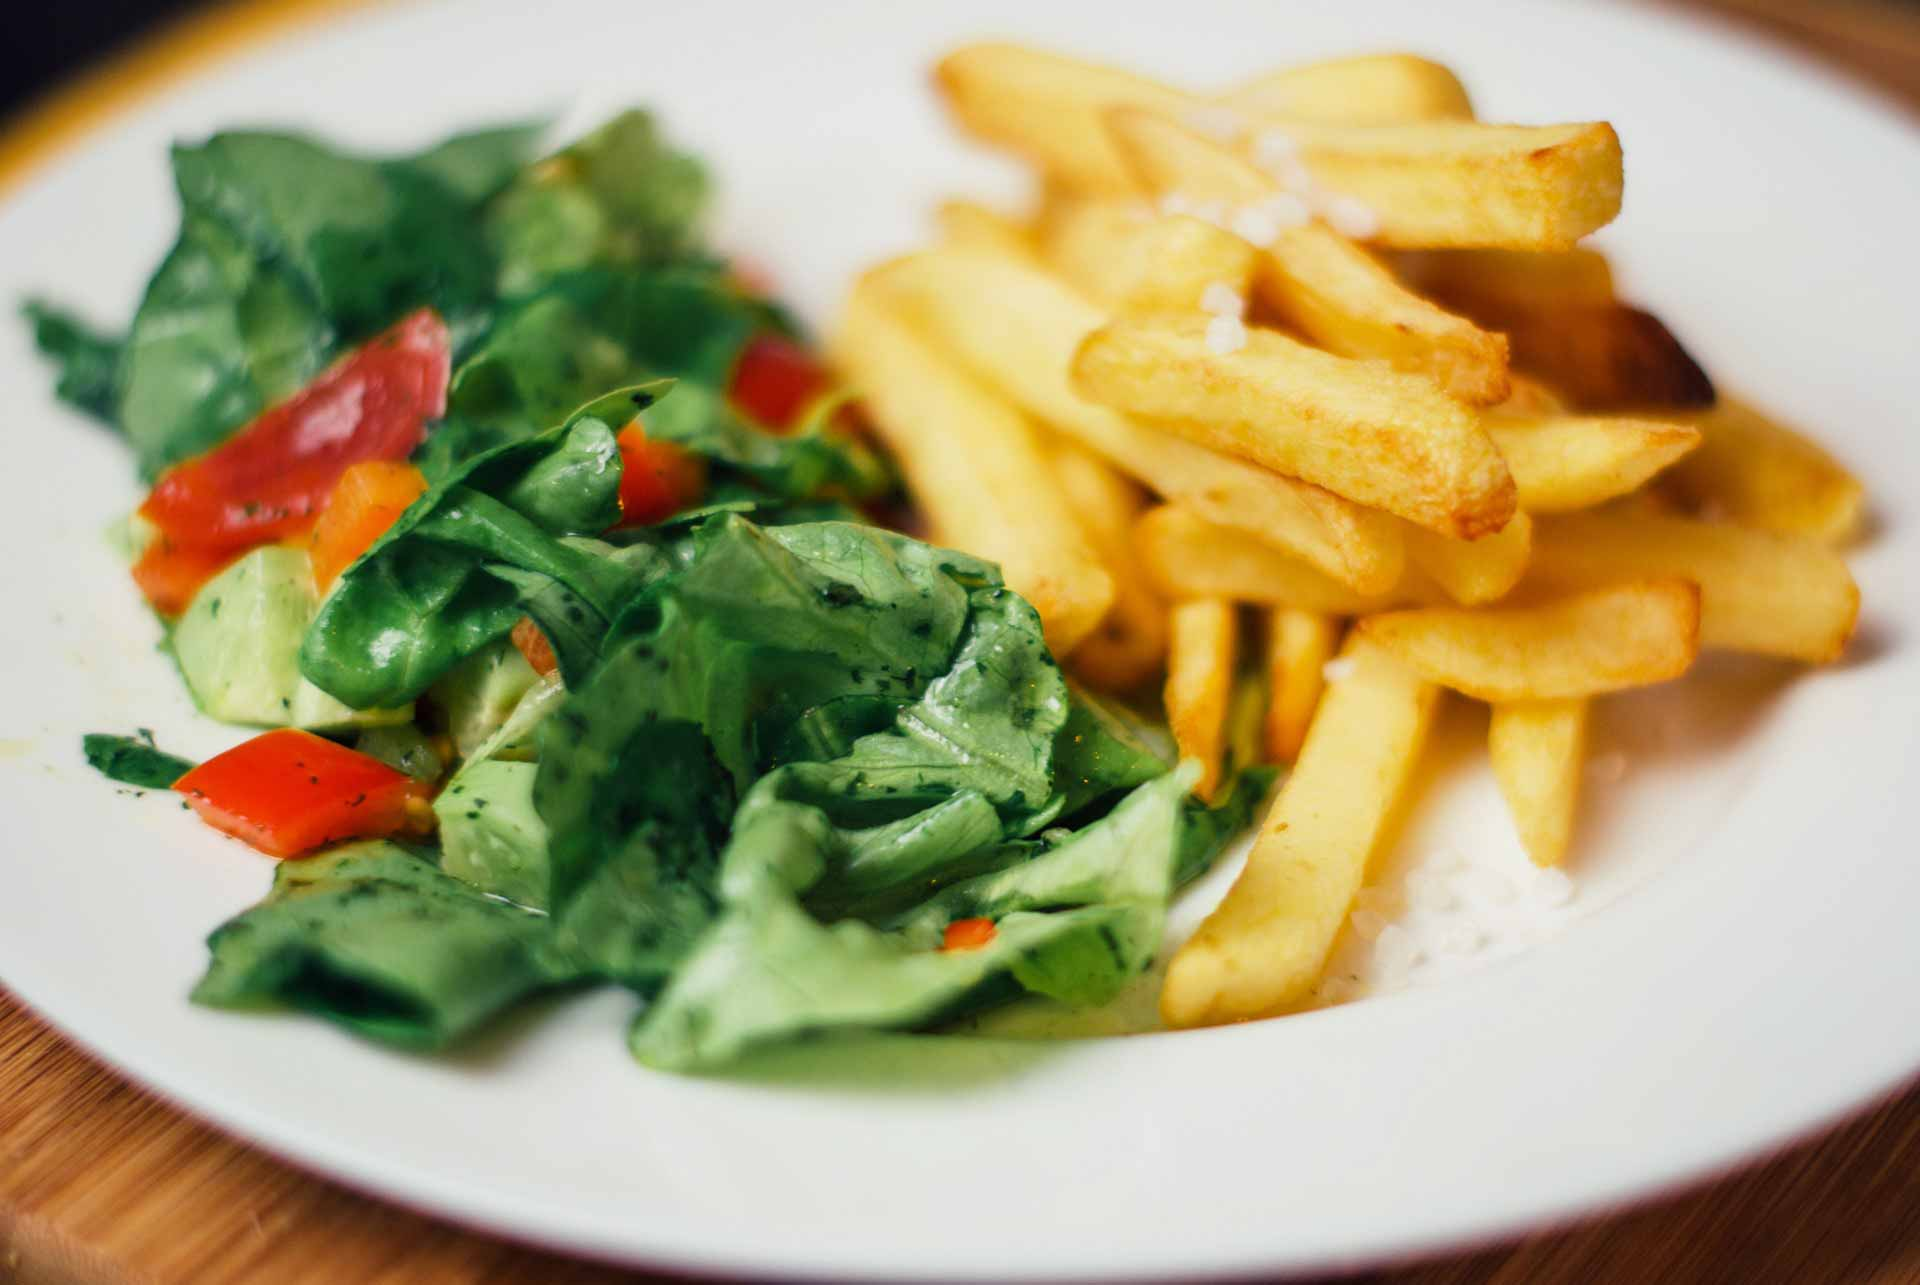 French fries and salad